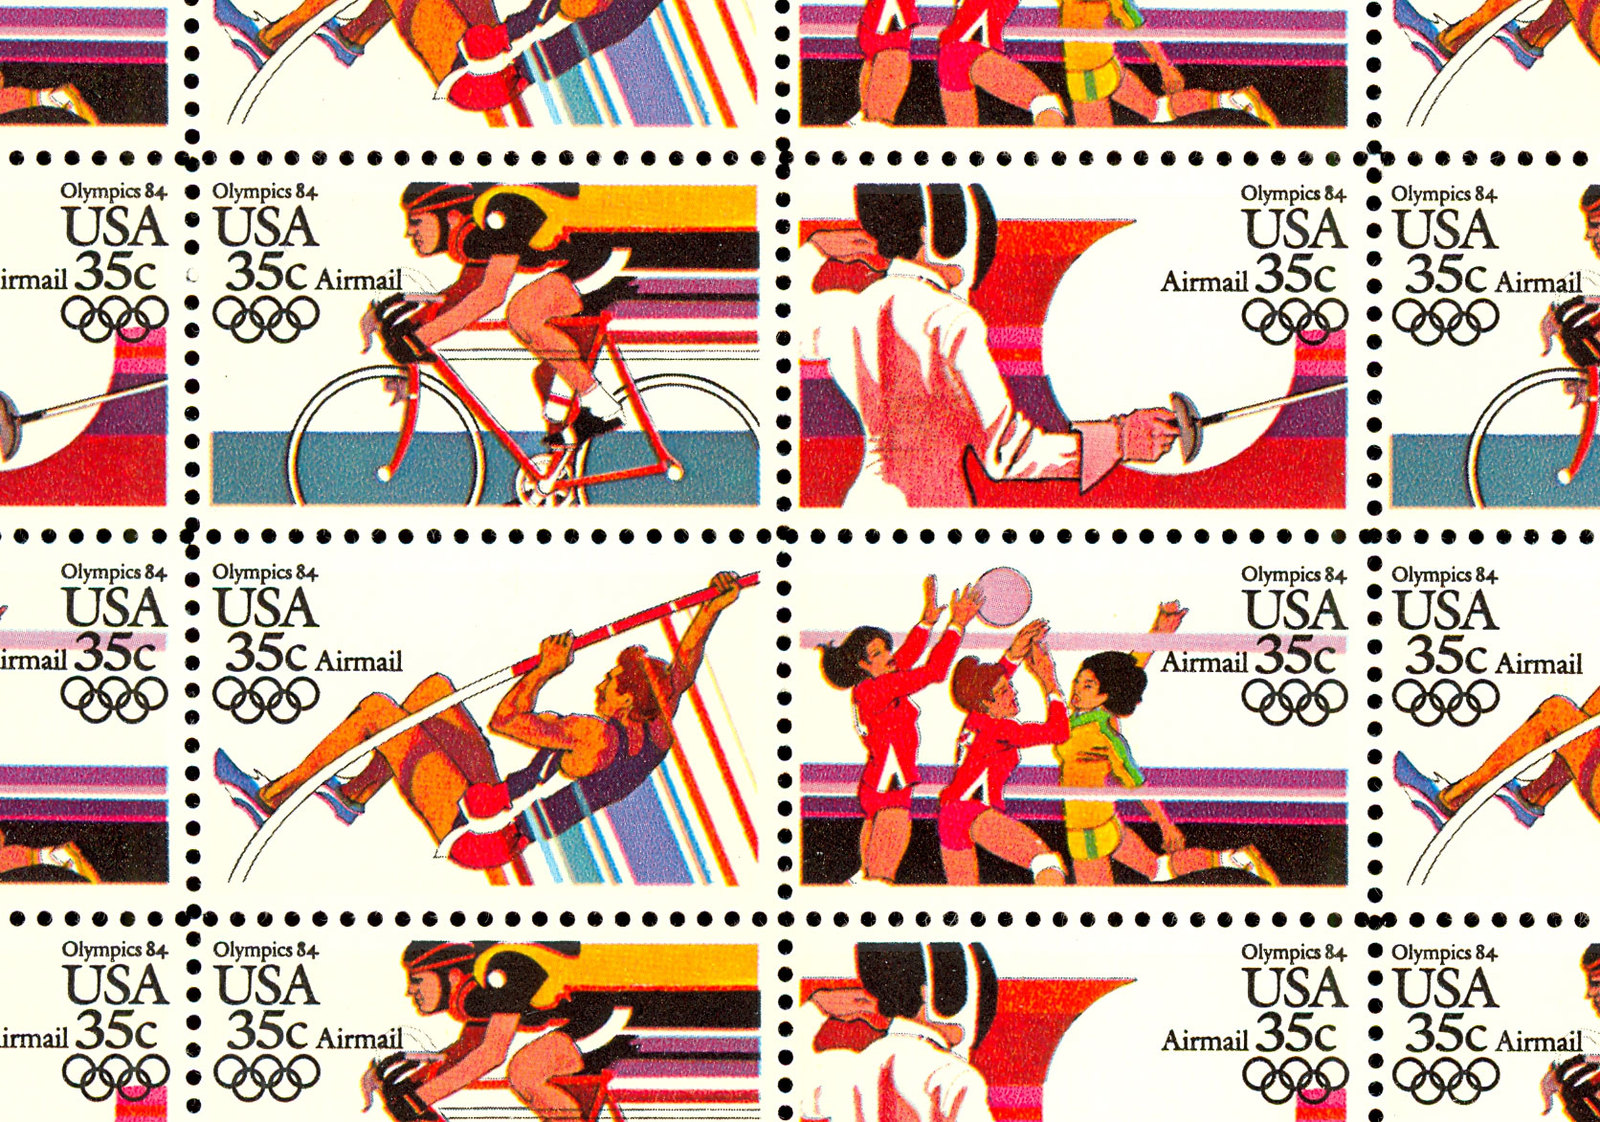 C109-12a Complete Sheet of 50 1984 Olympics 35 Cent Airmail Stamps - Stuart Katz